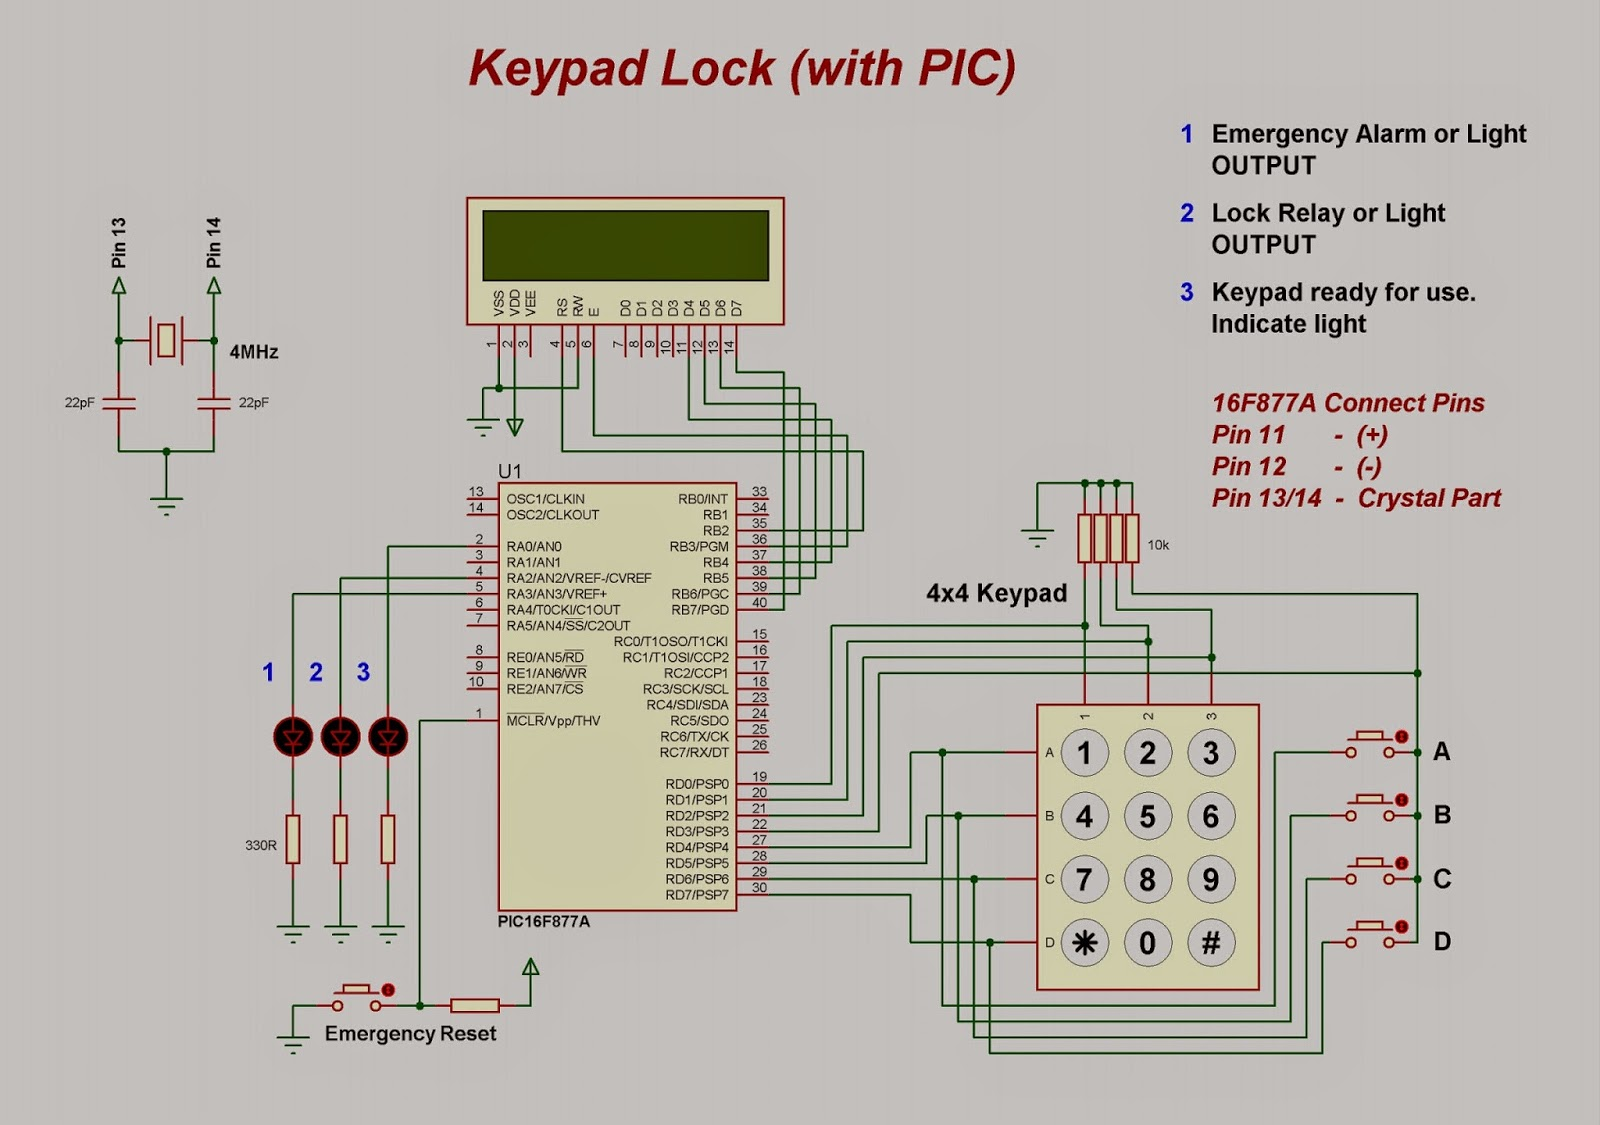 Future Dreams Keypad Base Lock With Pic Electronic Locks Circuits Electronics Tutorial And Schematics Circuit Diagram